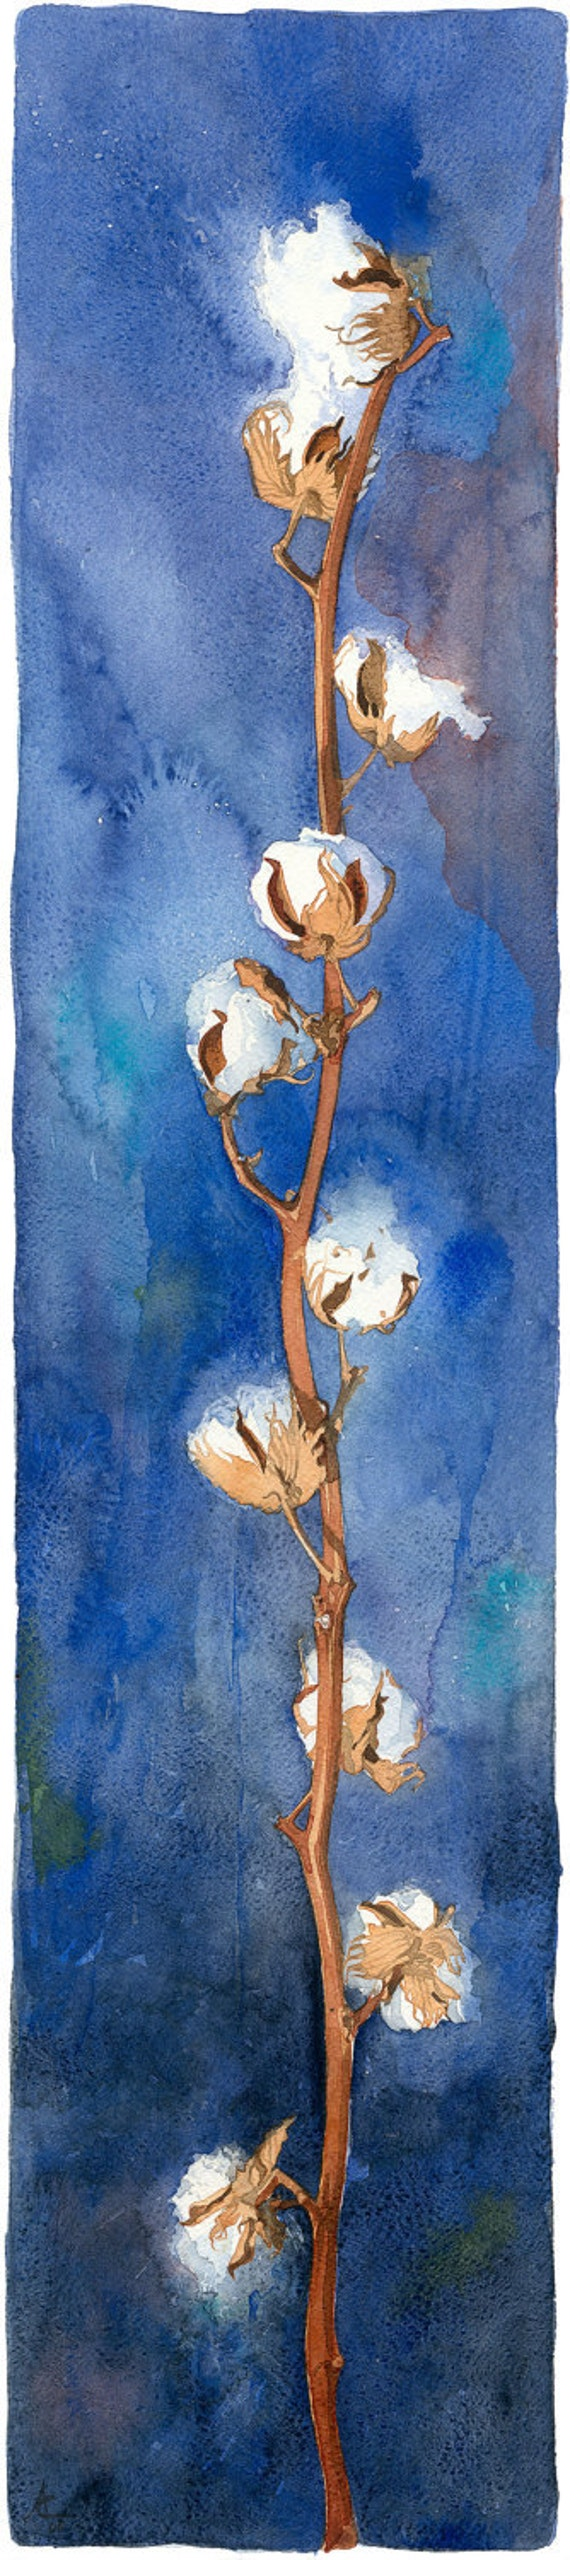 Cotton branch Watercolour Giclée print